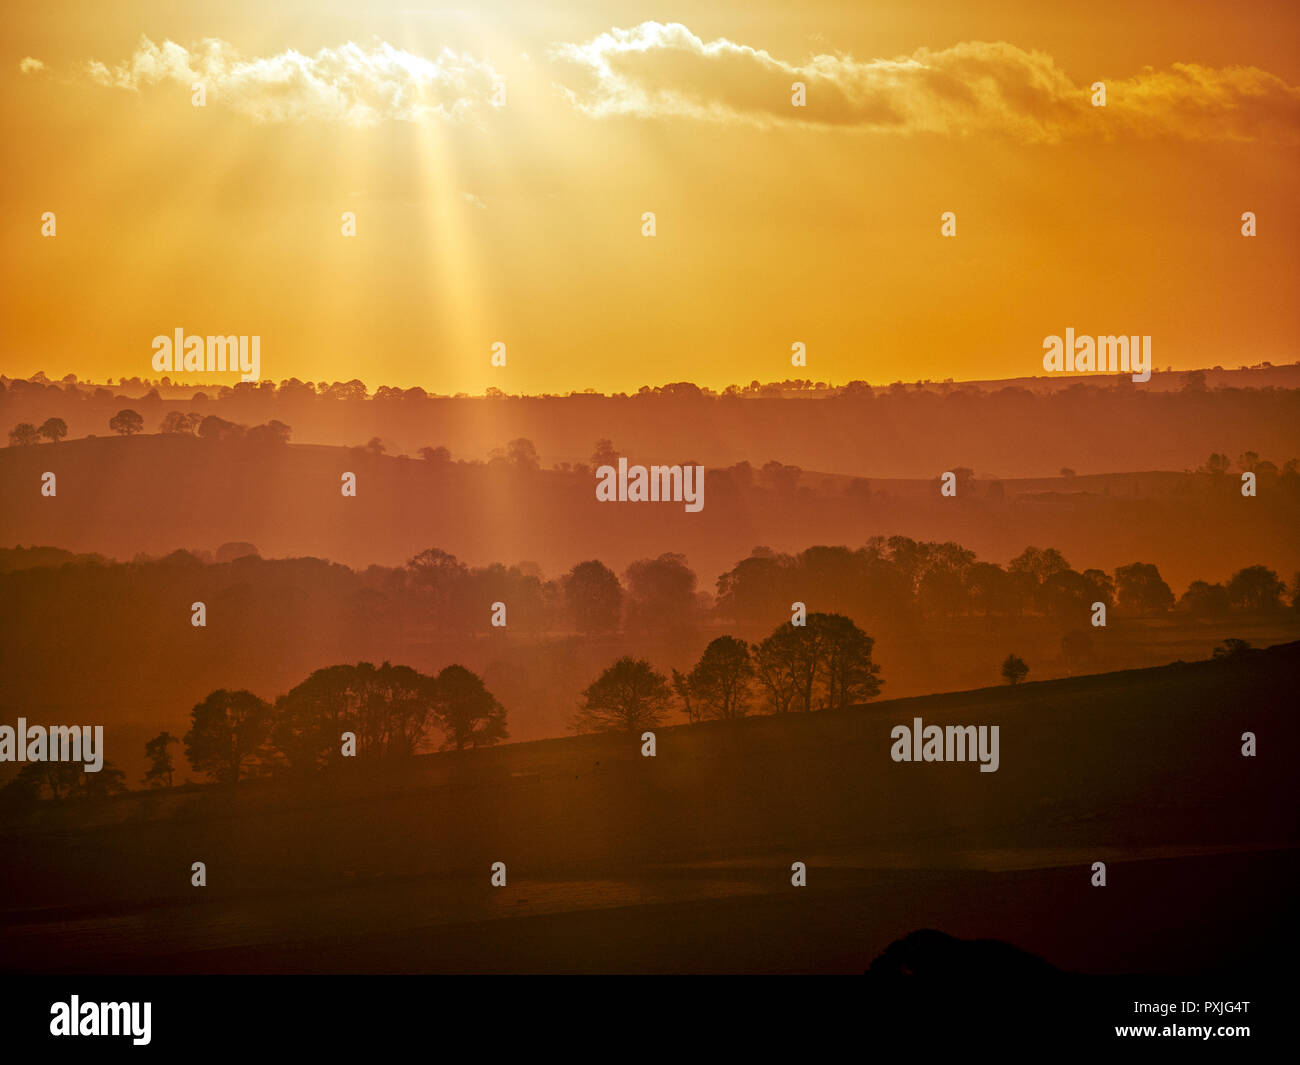 Biggan, UK. 22nd Oct, 2018. UK Weather: spectacular sunset along the A515 road between Buxton & Ashbourne in the Peak District National Park, Derbyshire Credit: Doug Blane/Alamy Live News Stock Photo